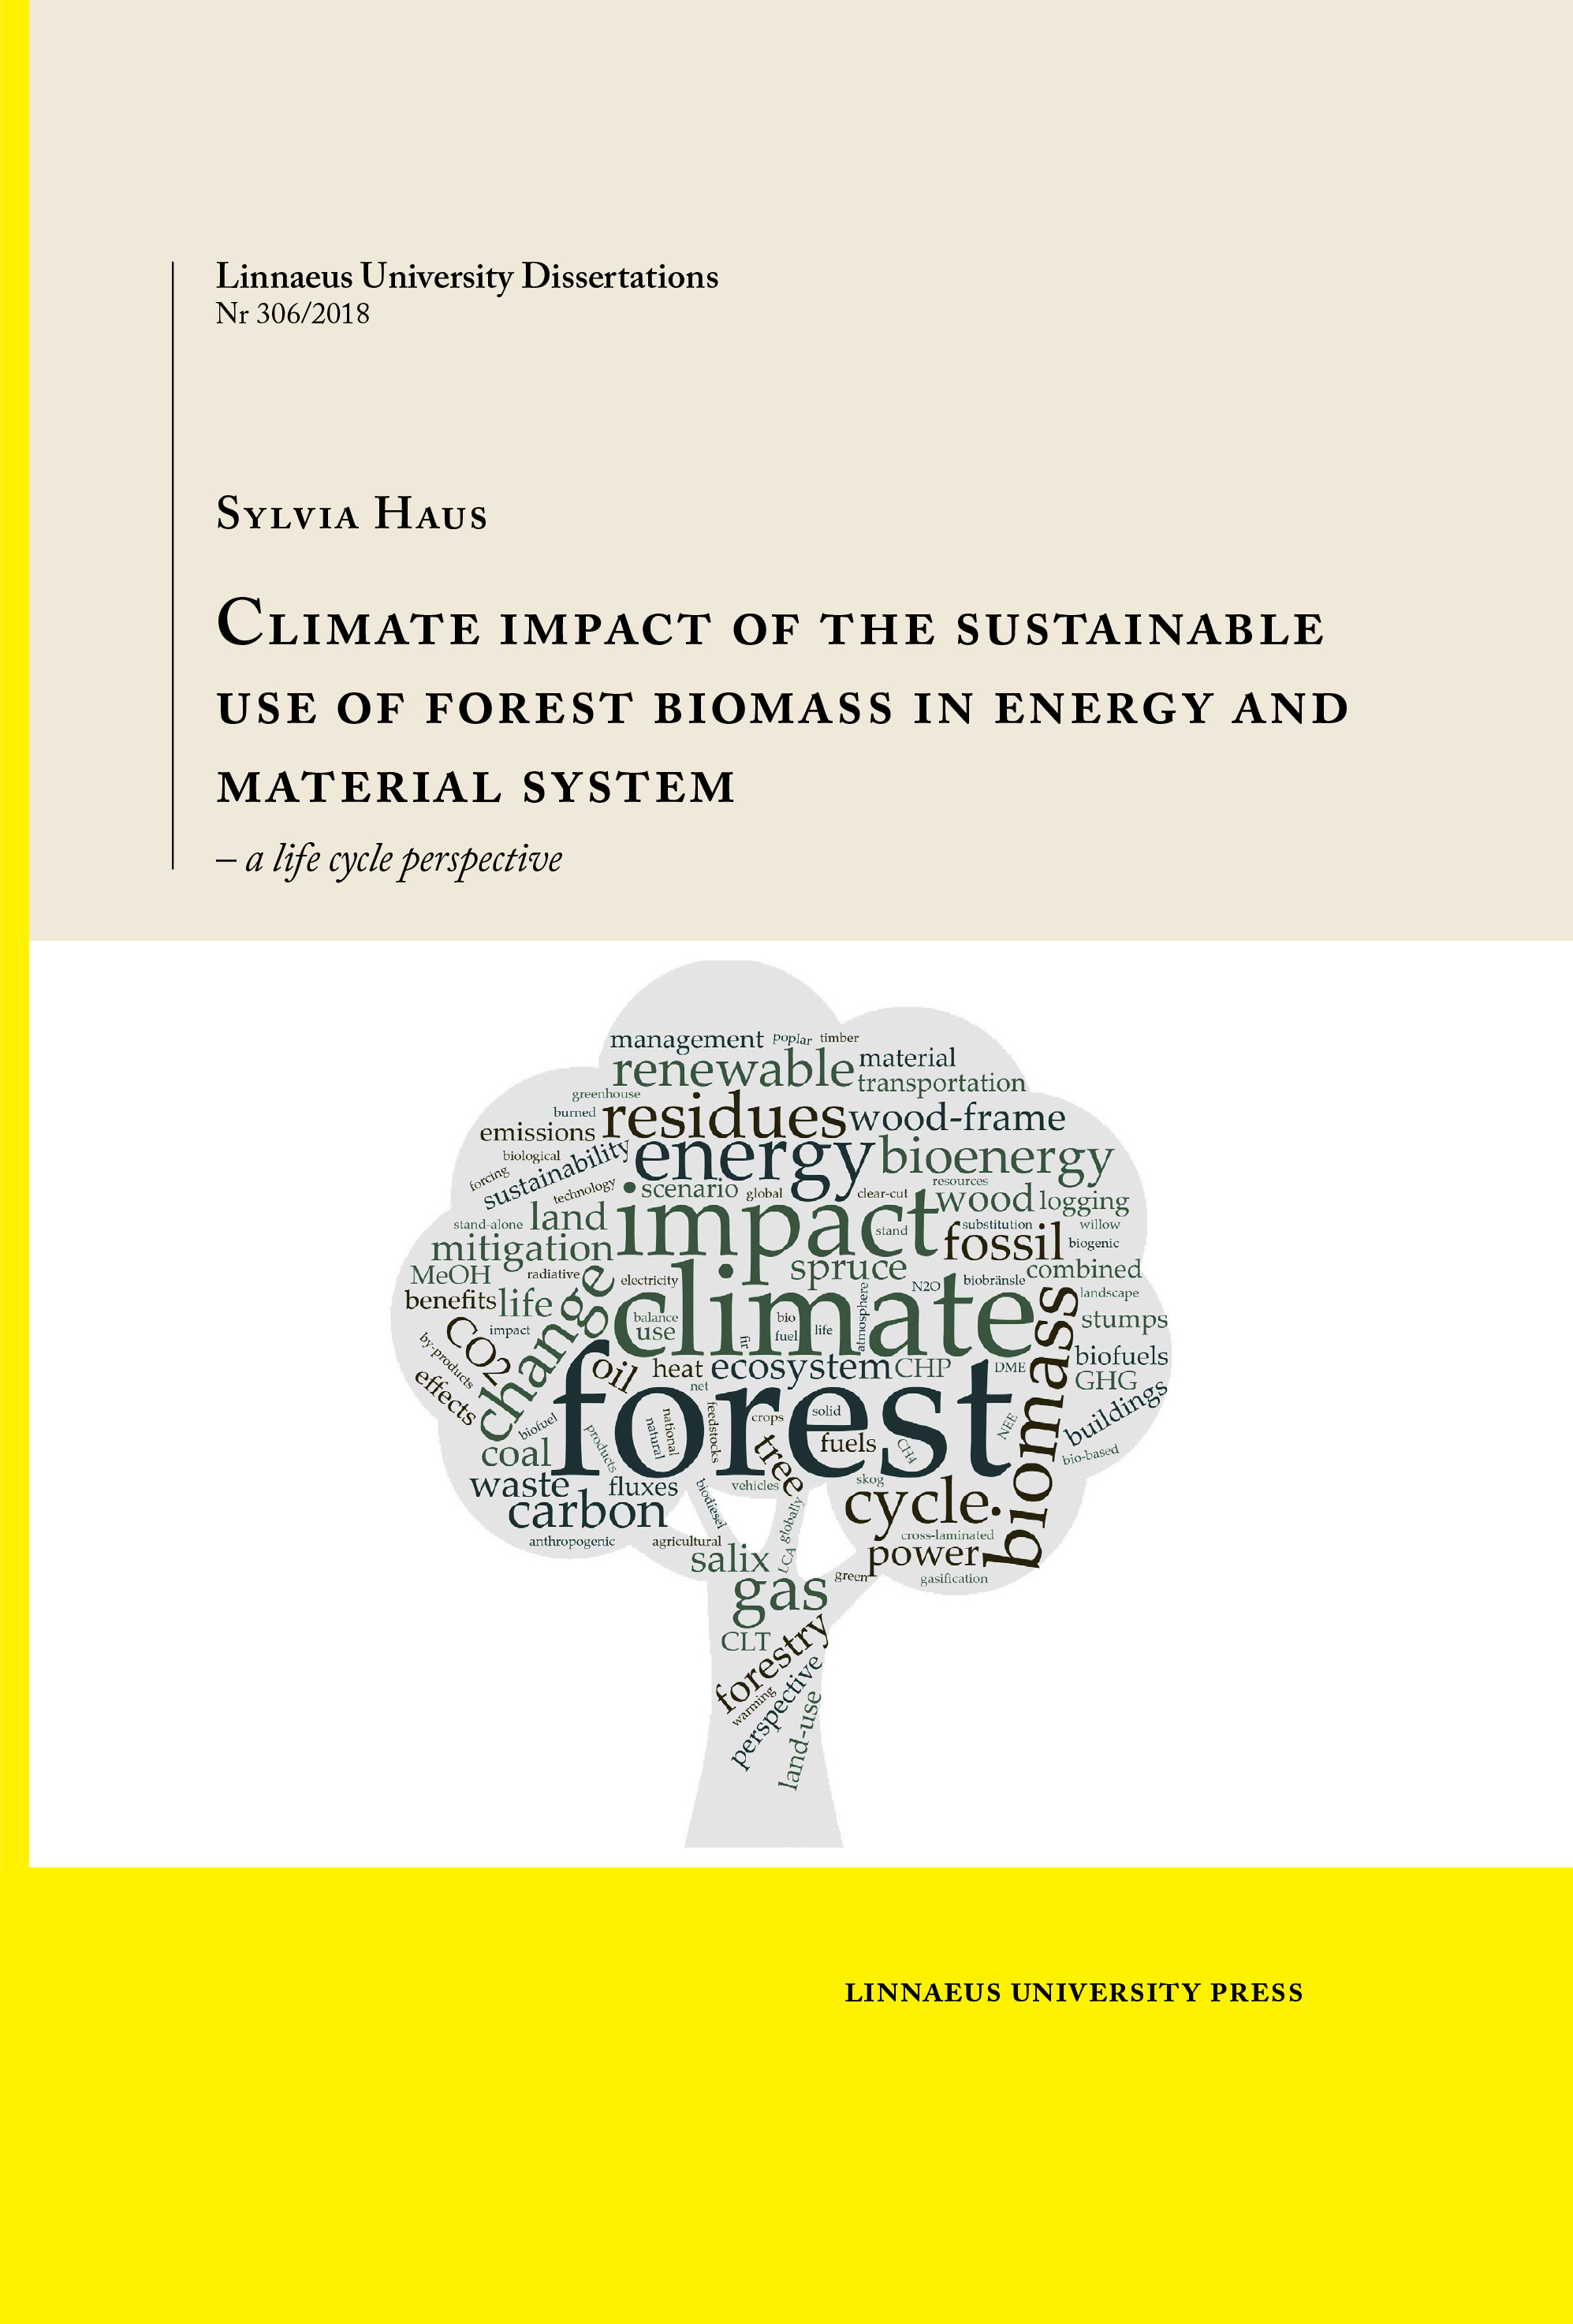 over the long term an active and sustainable management of forests including their use as a source for wood products and bioenergy allows the greatest